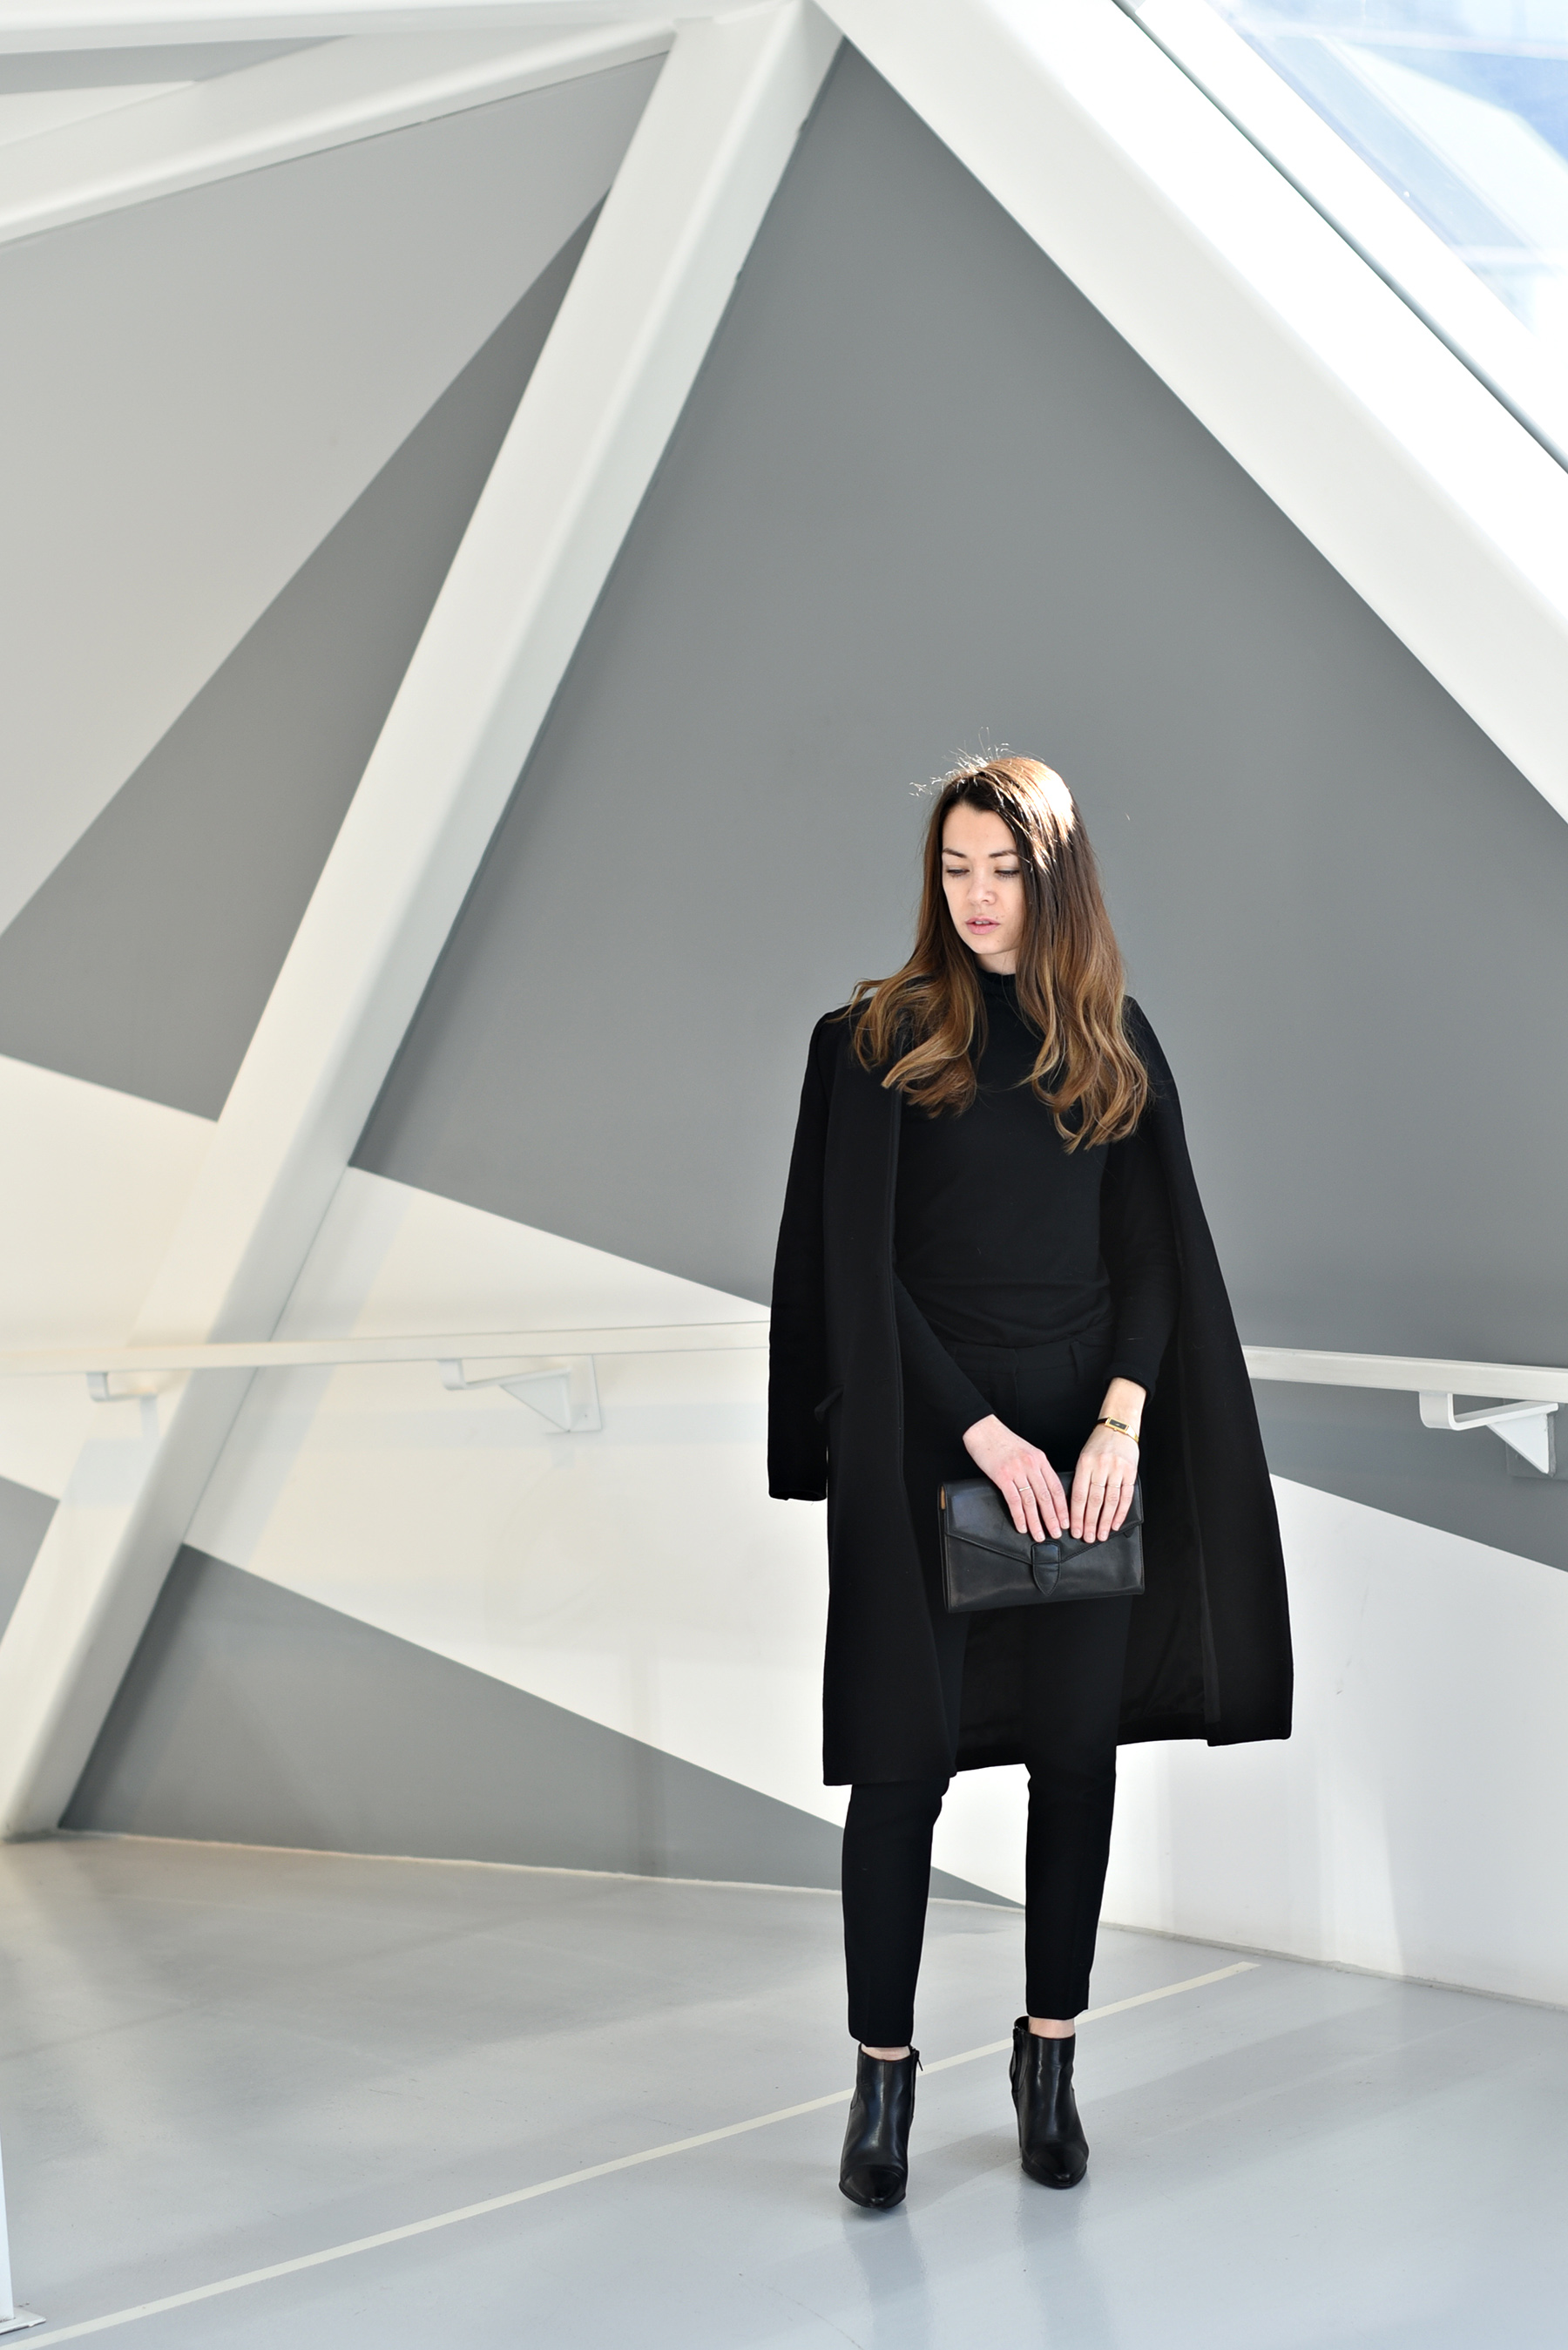 Styled : The Minimalist Wardrobe